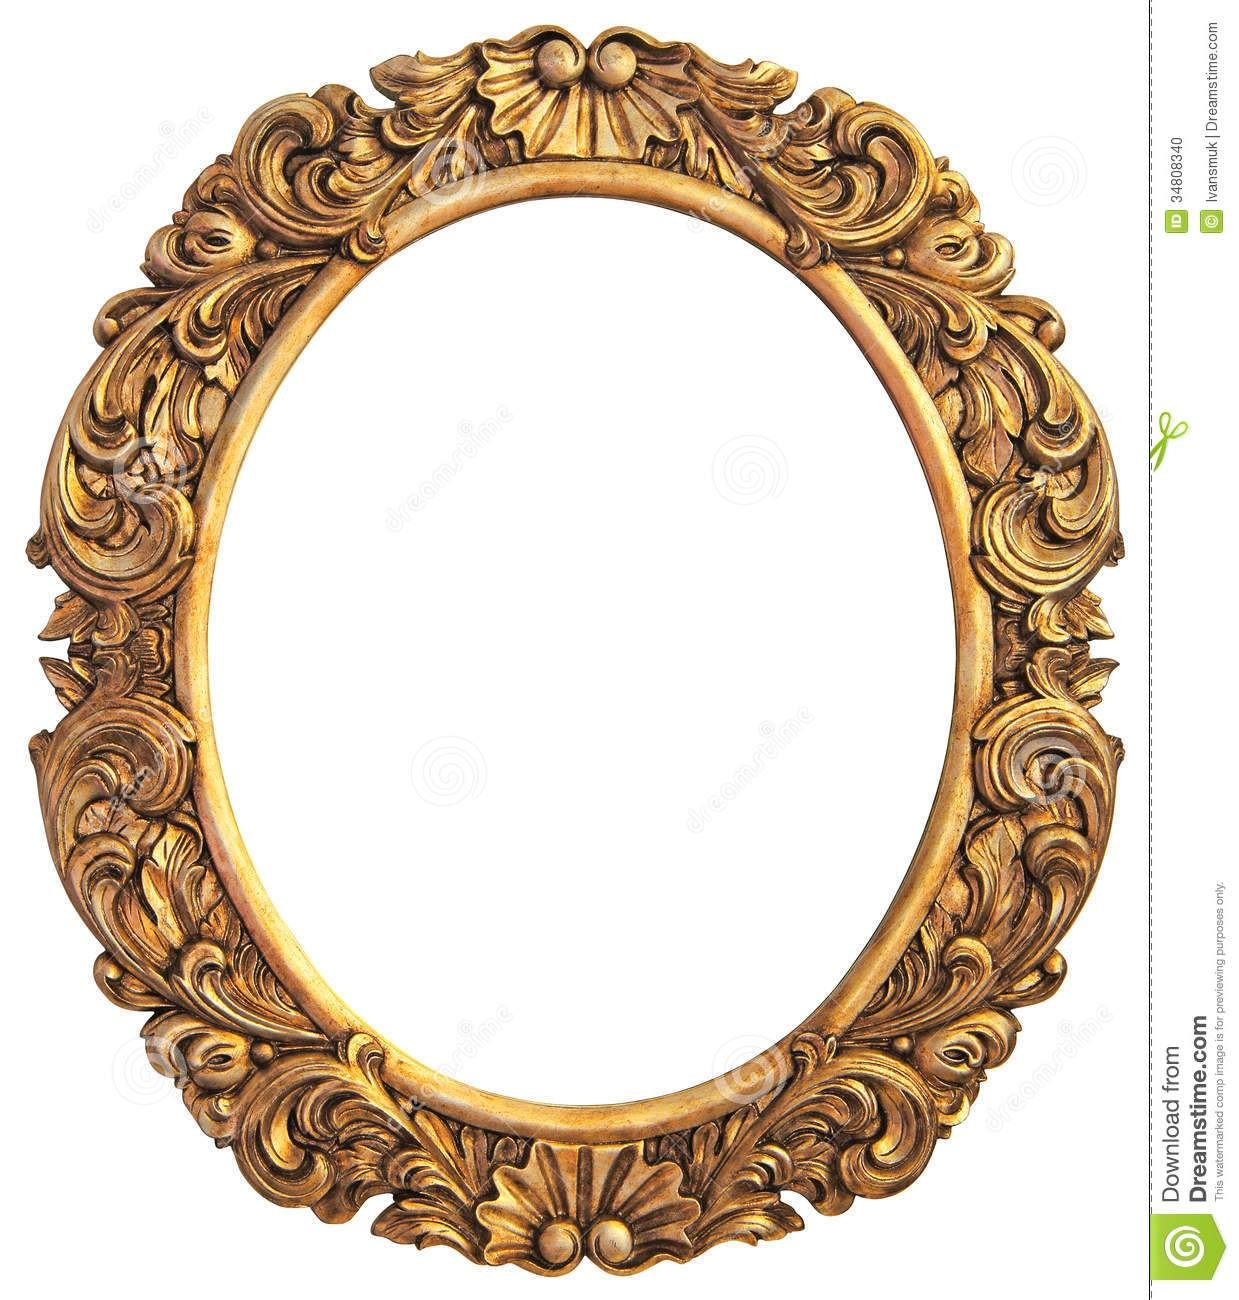 Antique Gilded Hand Mirror Over White Royalty Free Stock Image In Antique Gilded Mirrors (View 22 of 25)